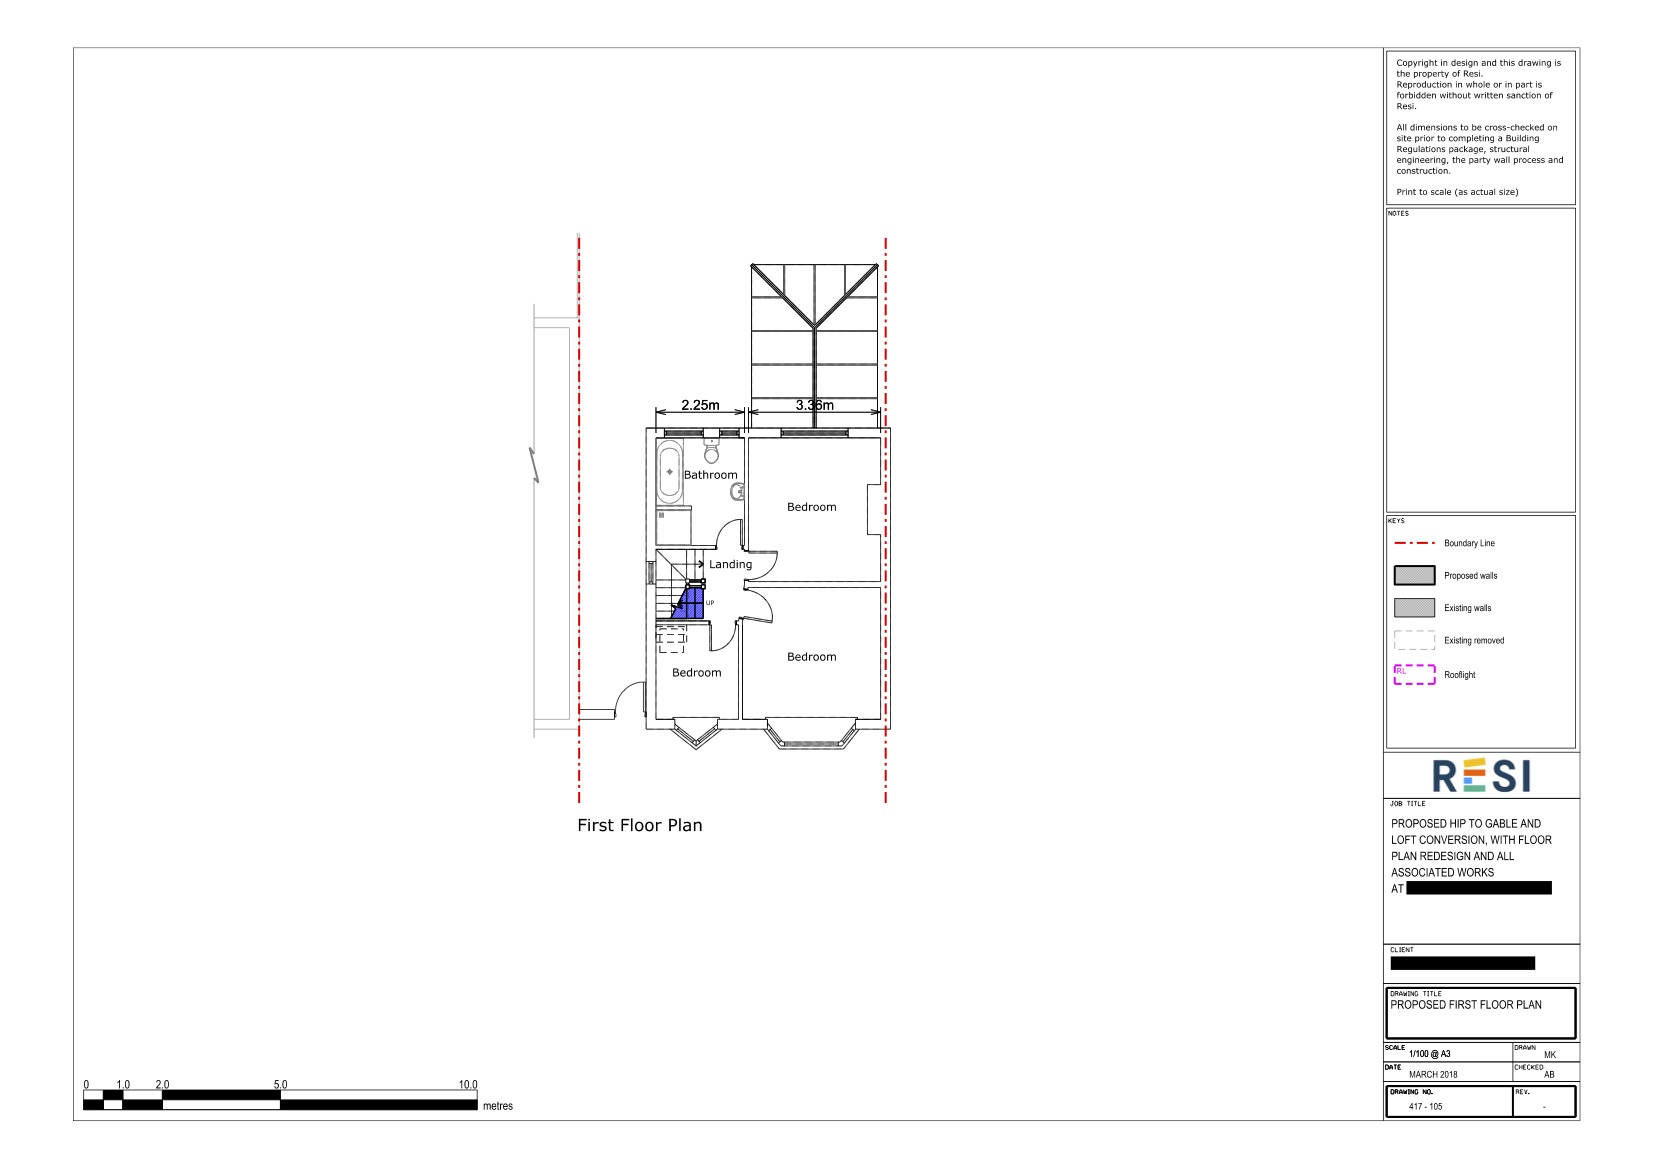 Architectural drawings set lc   first floor plans